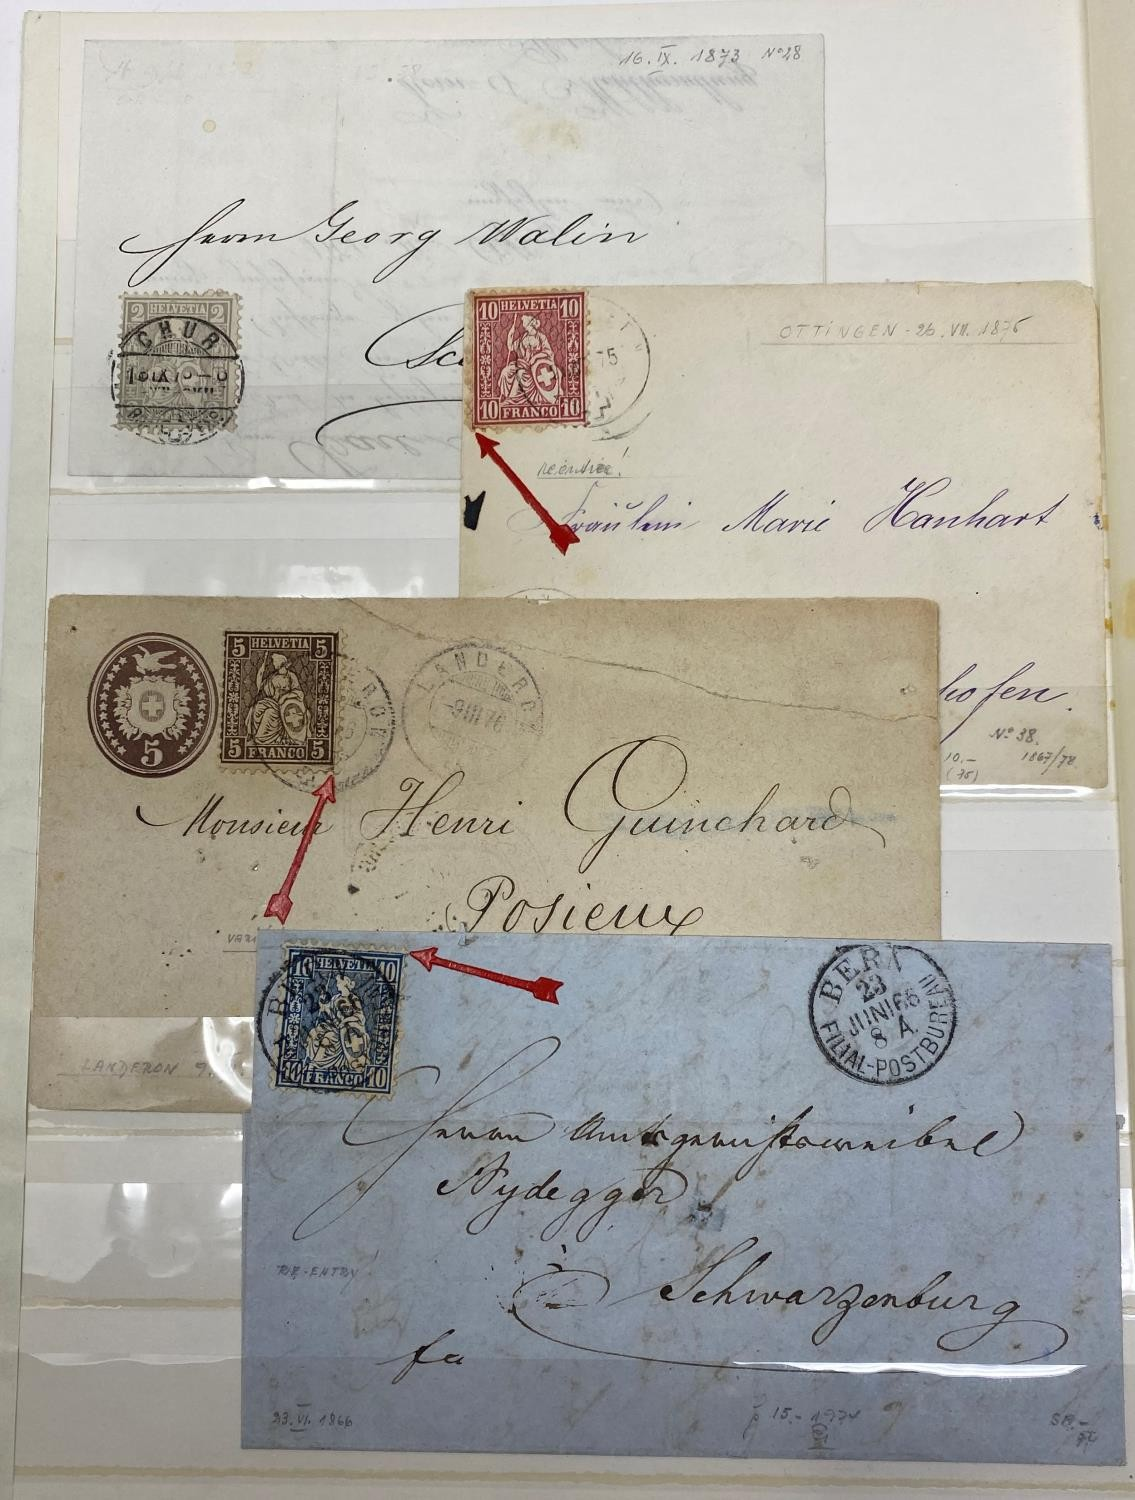 Europe Postal history selection of 35 early items with attractive frankings from Switzerland, - Image 2 of 3